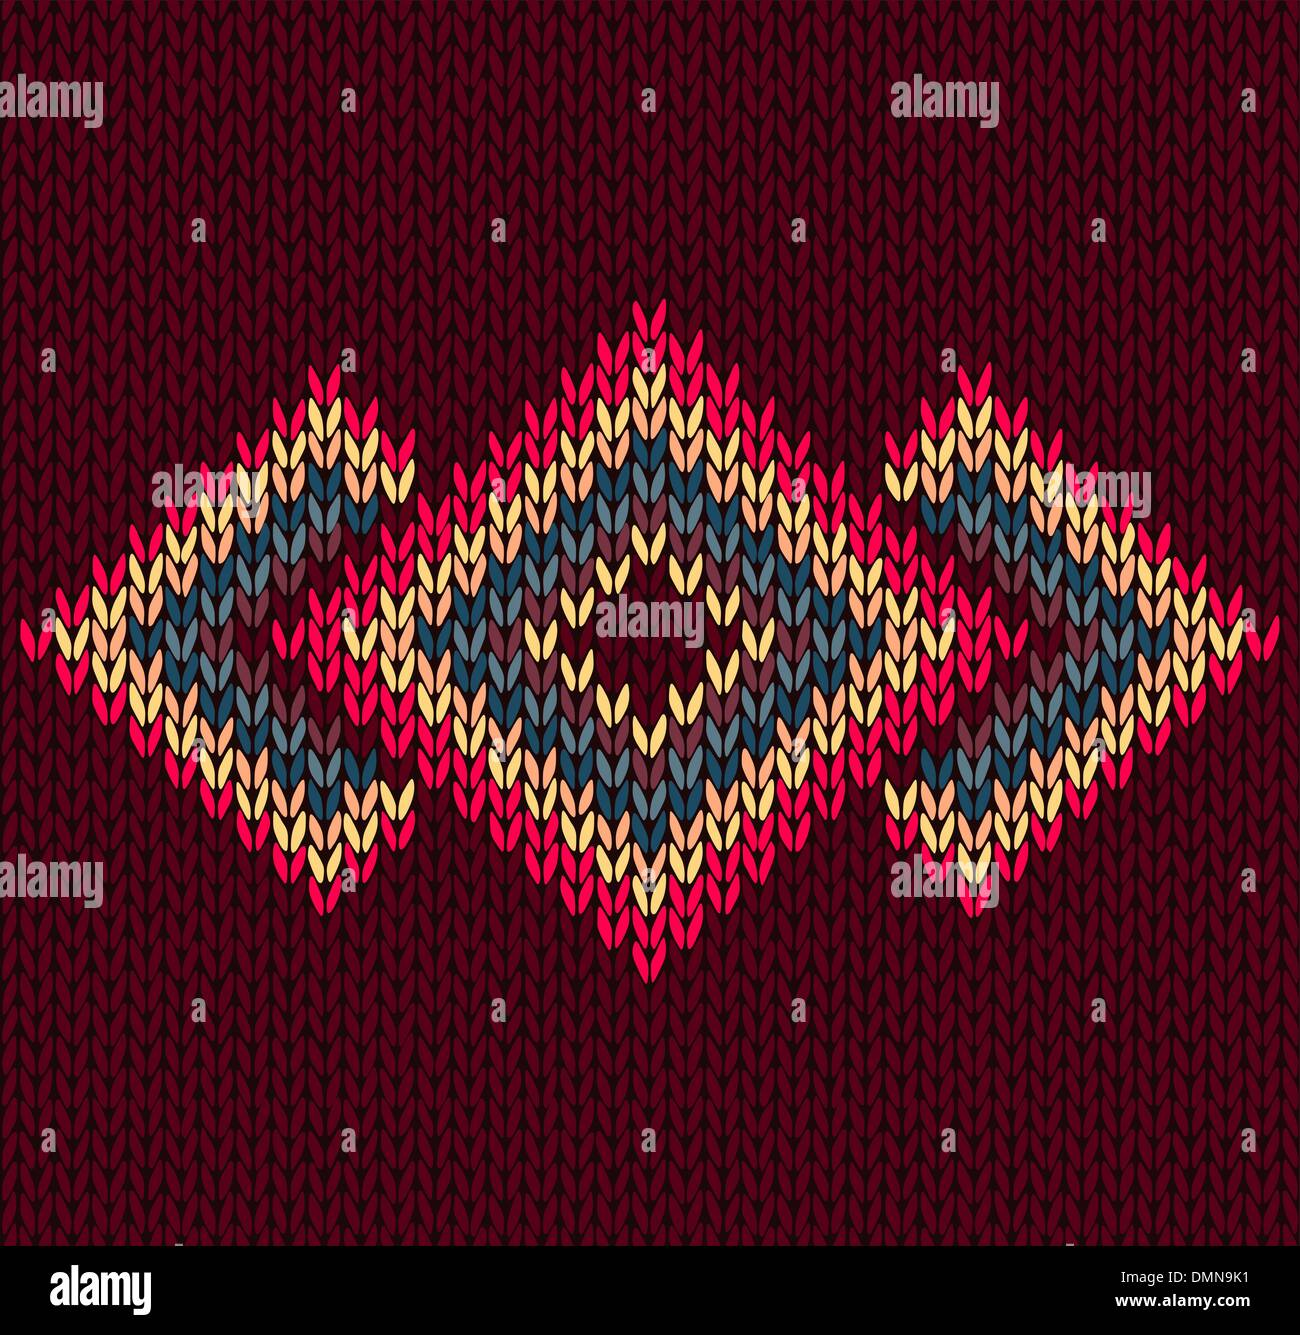 Style Abstract  Trendy Seamless Symmetric Ethnic Geometric Color - Stock Image